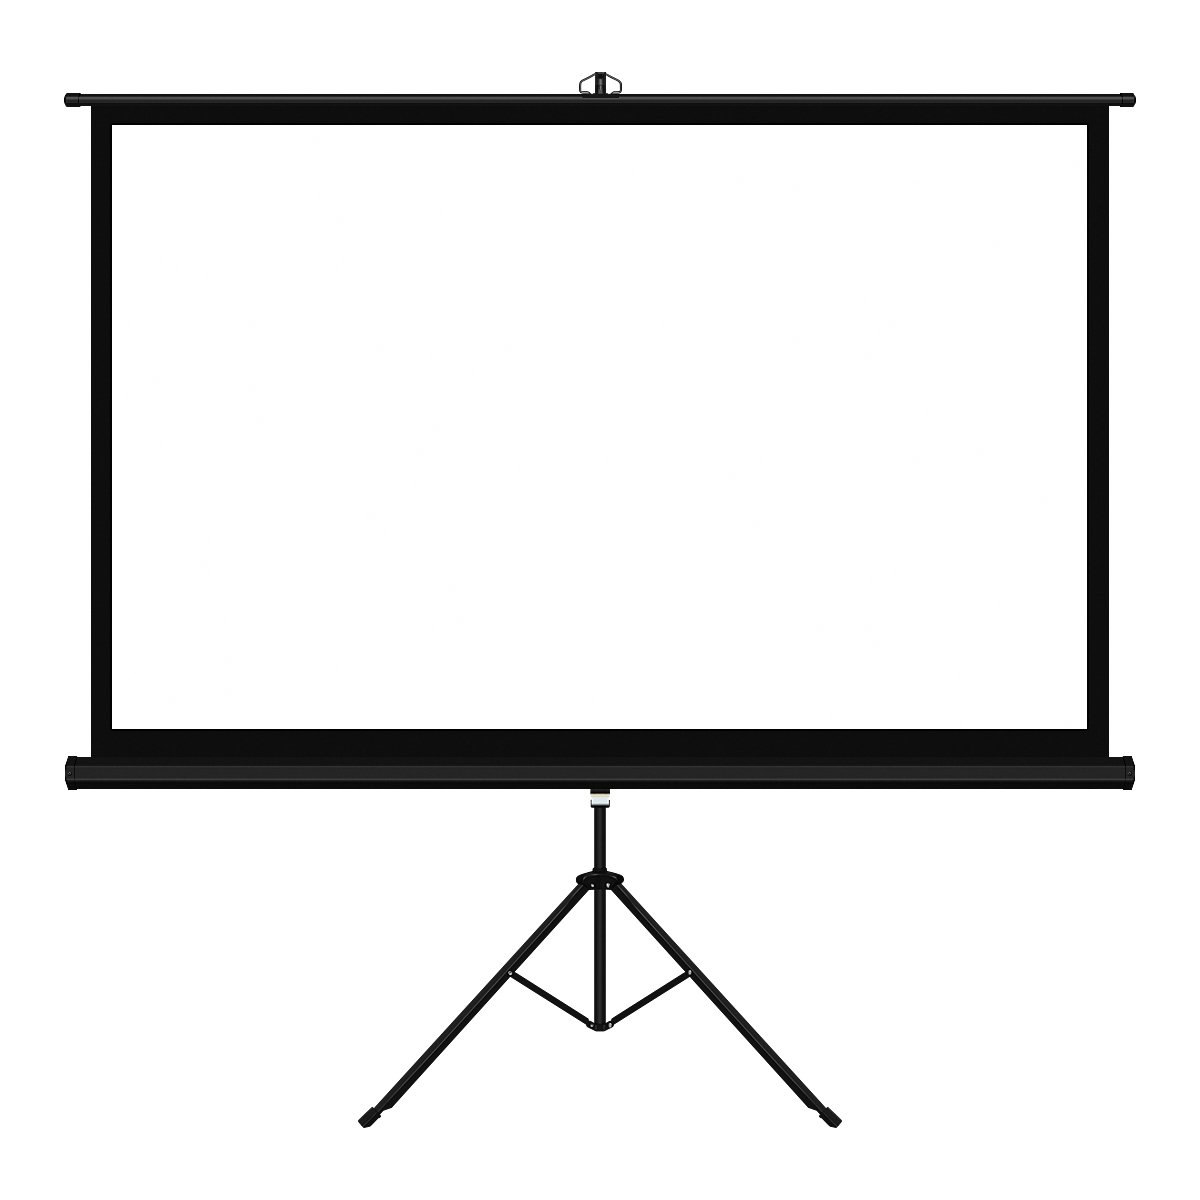 100 Inch 16:9 Movie Screen FastFox Outdoor Portable Home Cinema Projector Screens with Tripod Stand PVC Fabric Matte White by EZAPOR